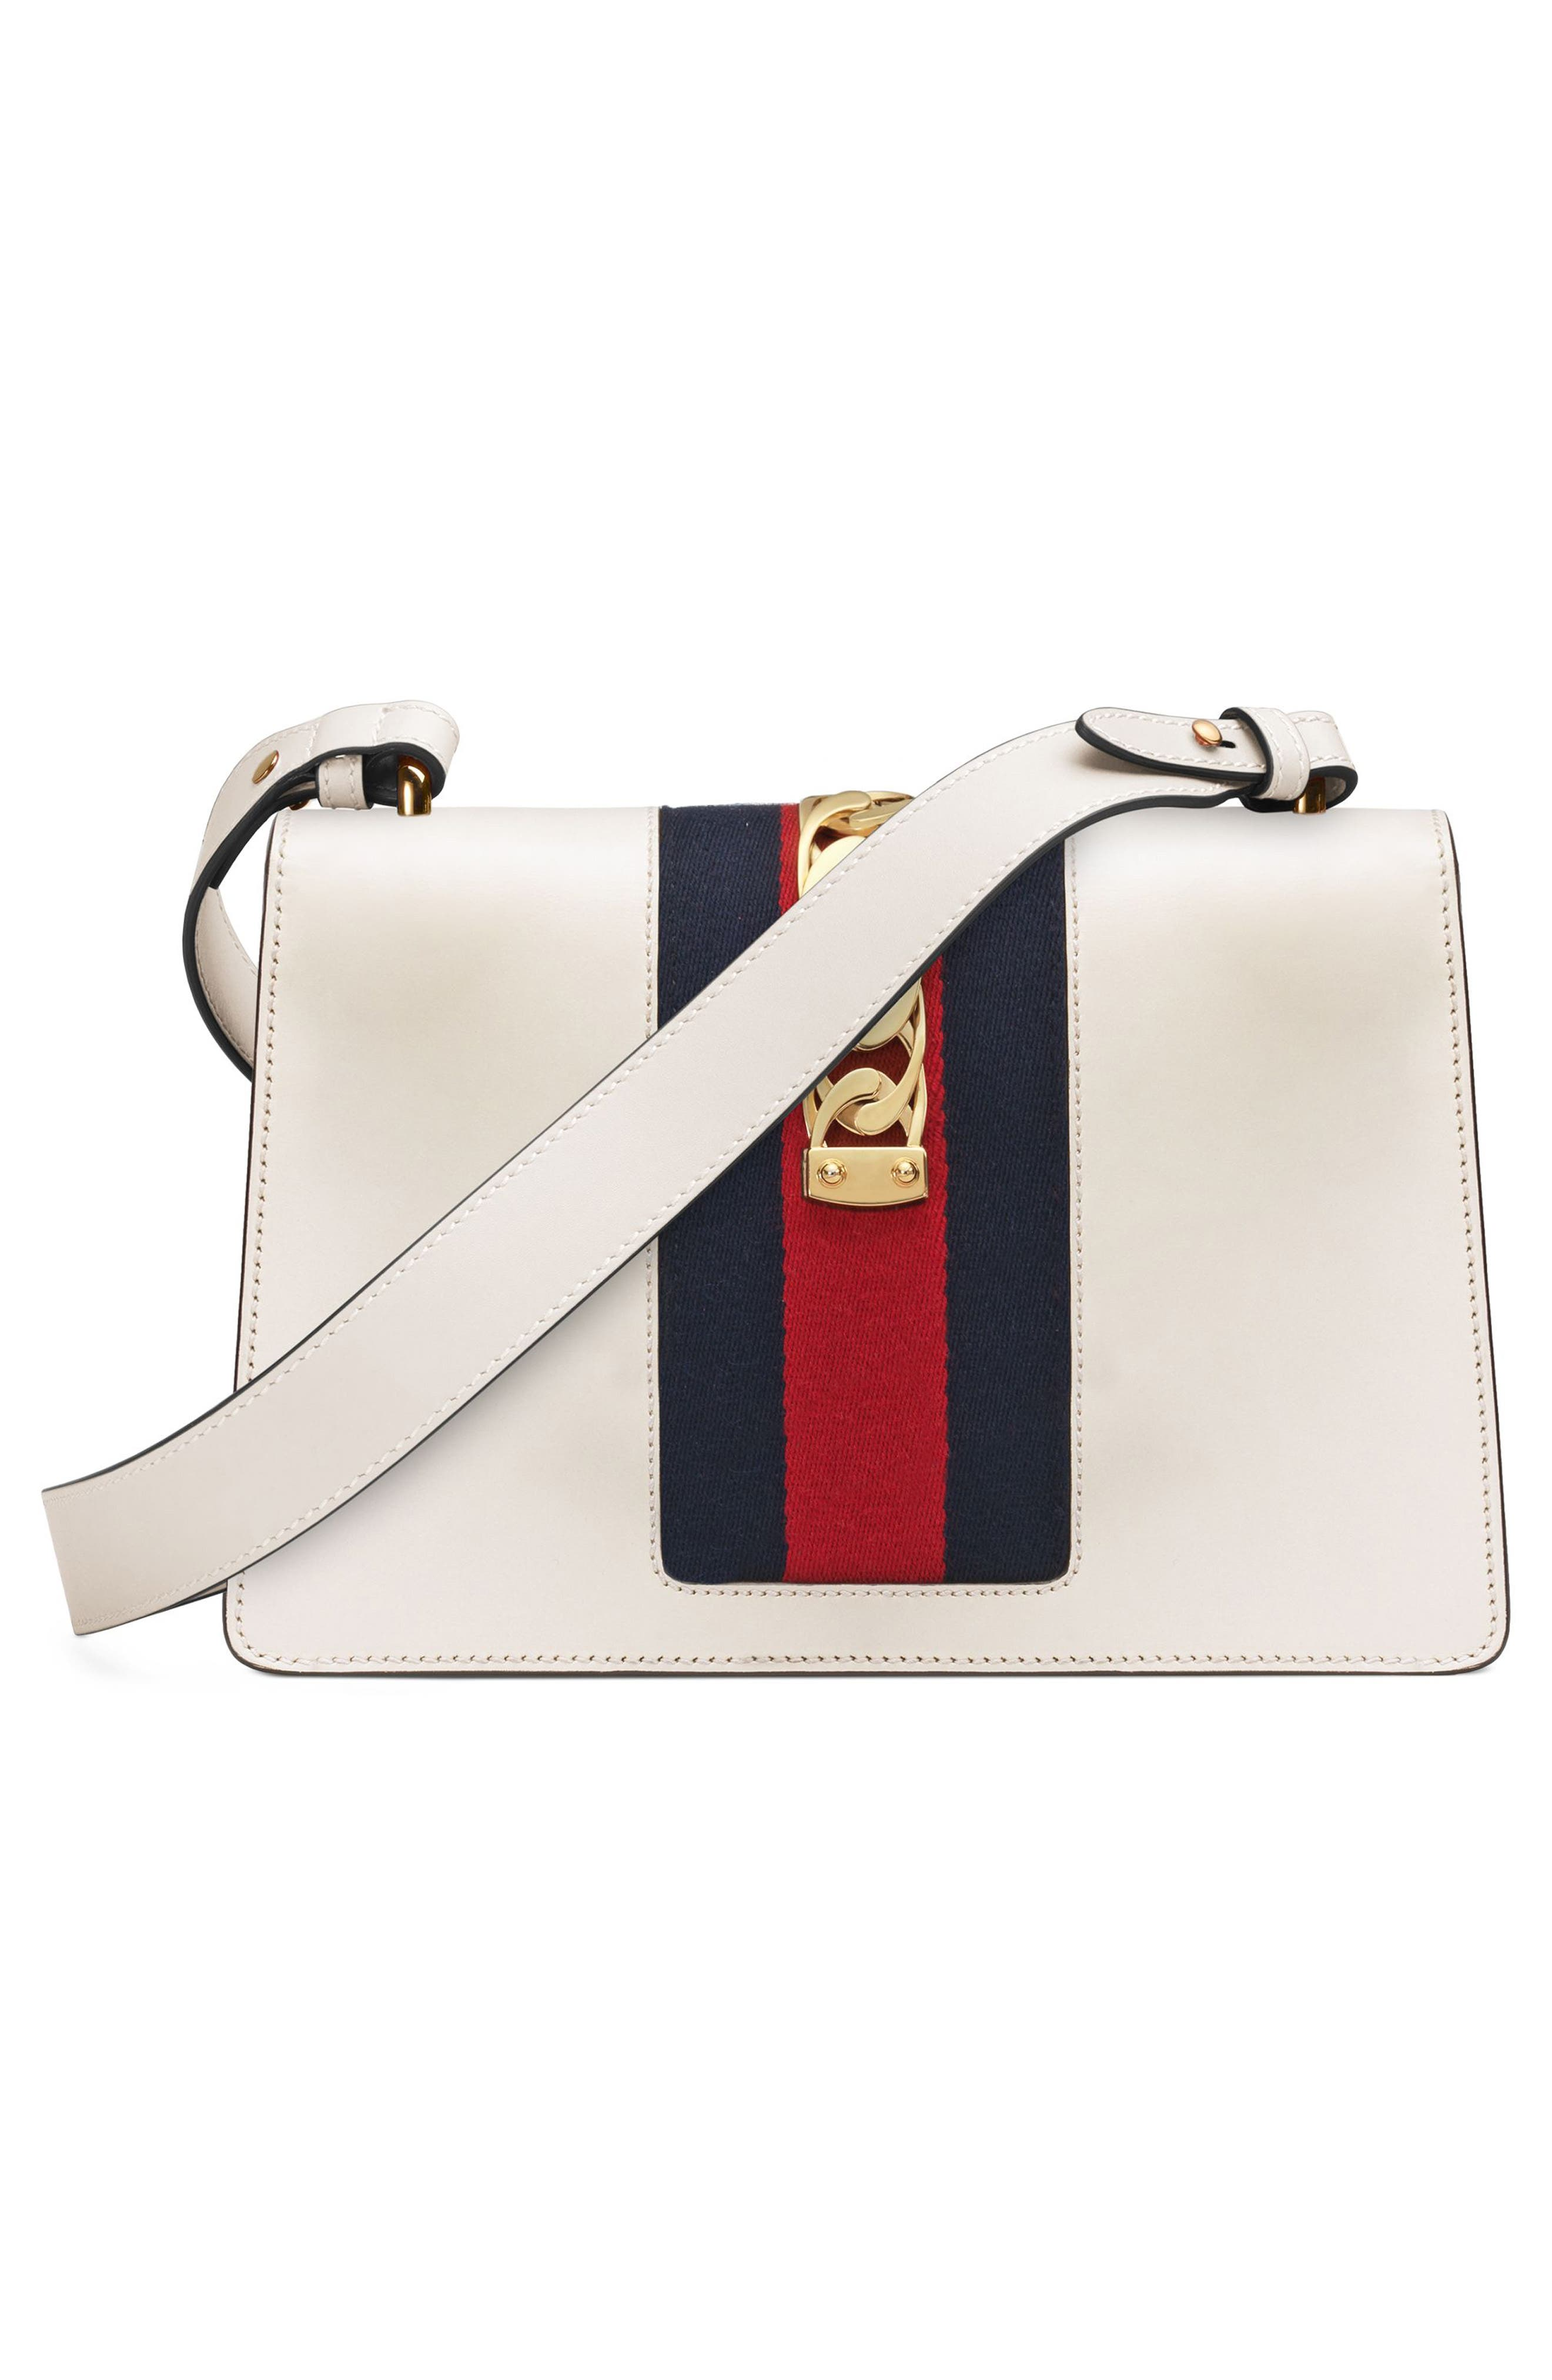 GUCCI, Small Sylvie Leather Shoulder Bag, Alternate thumbnail 6, color, WHITE